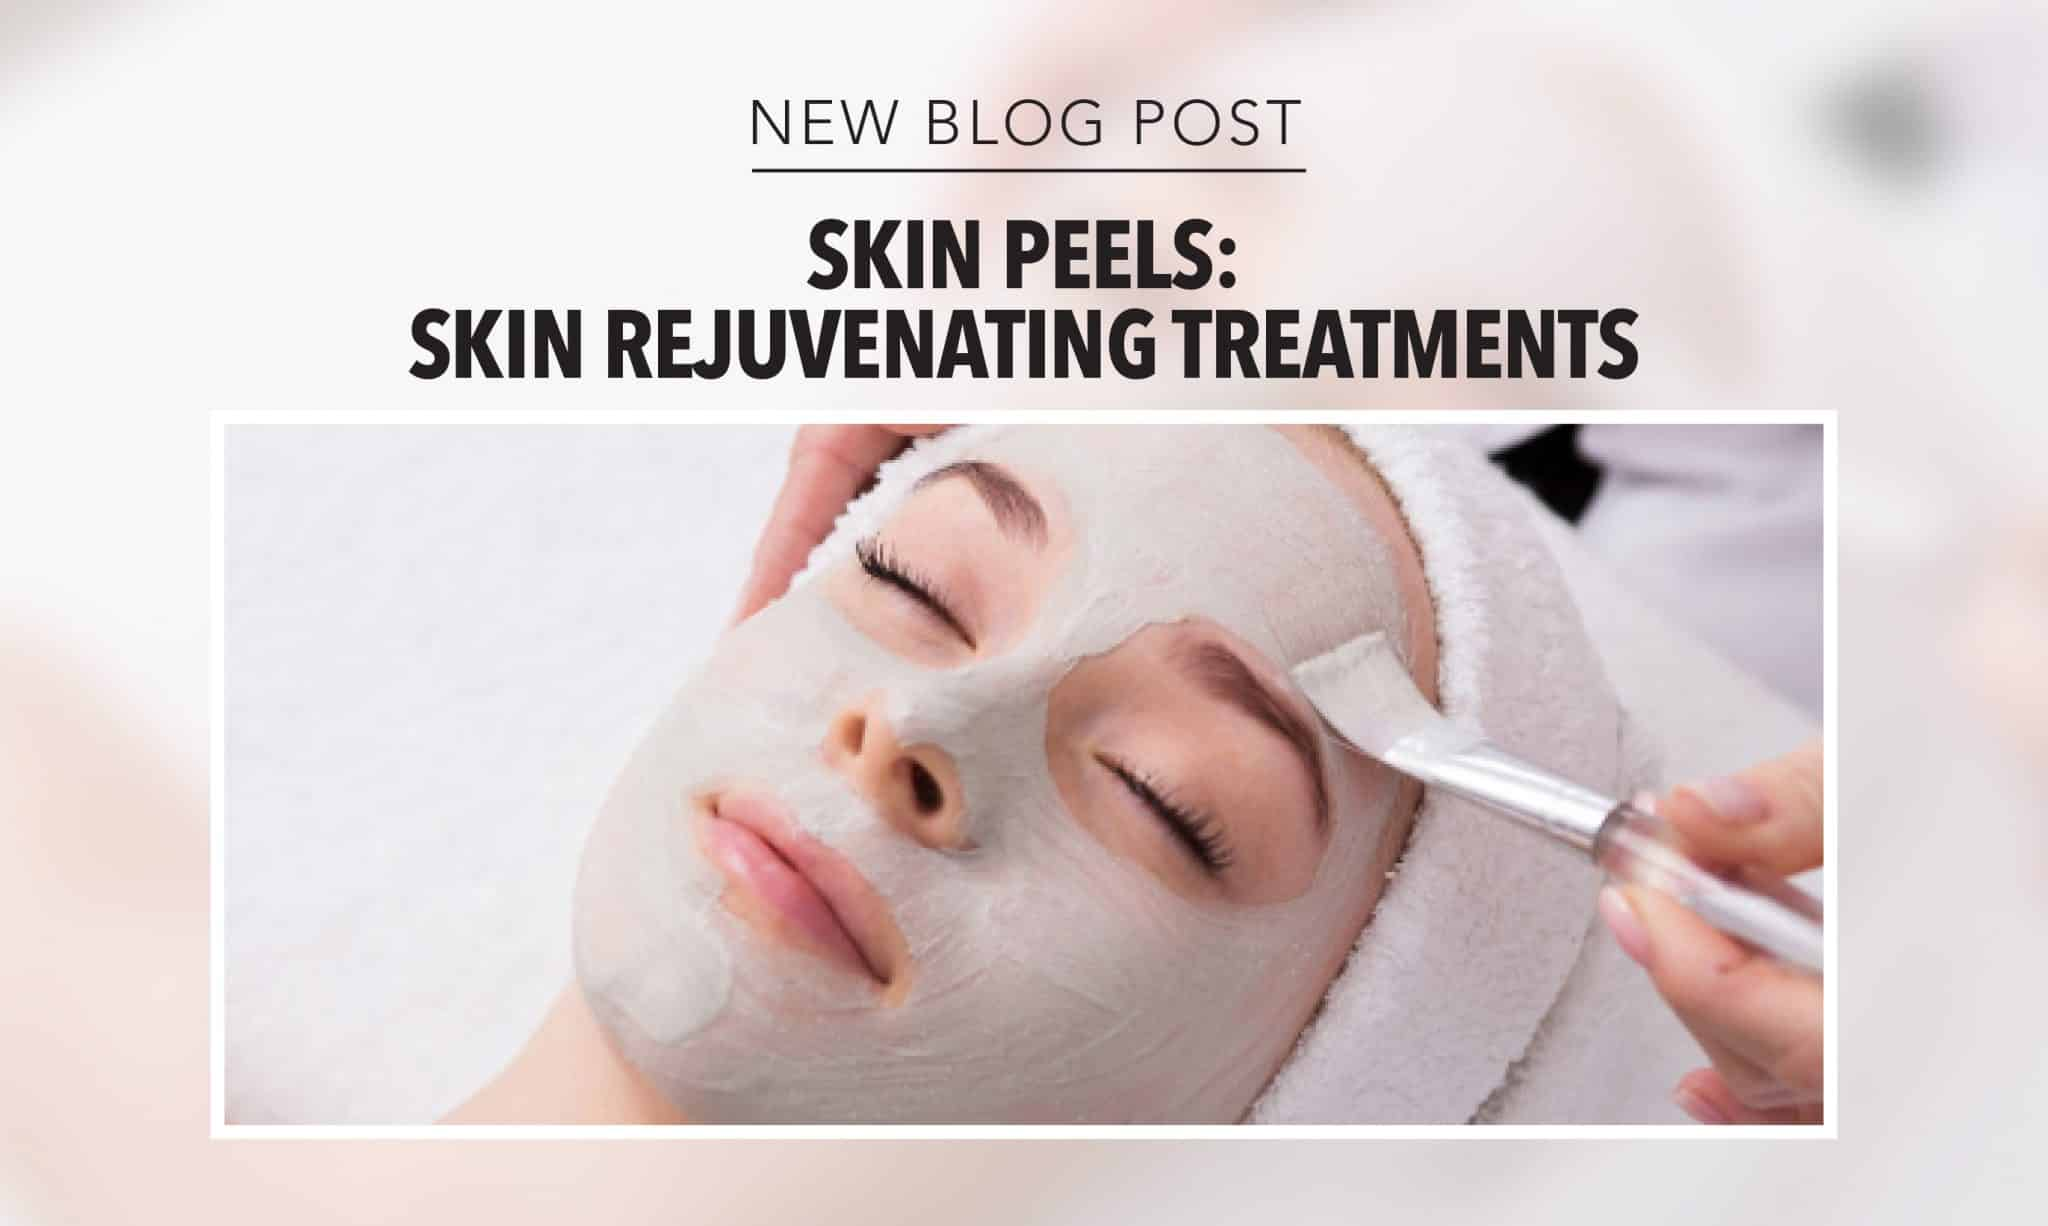 Skin Rejuvenating Treatments